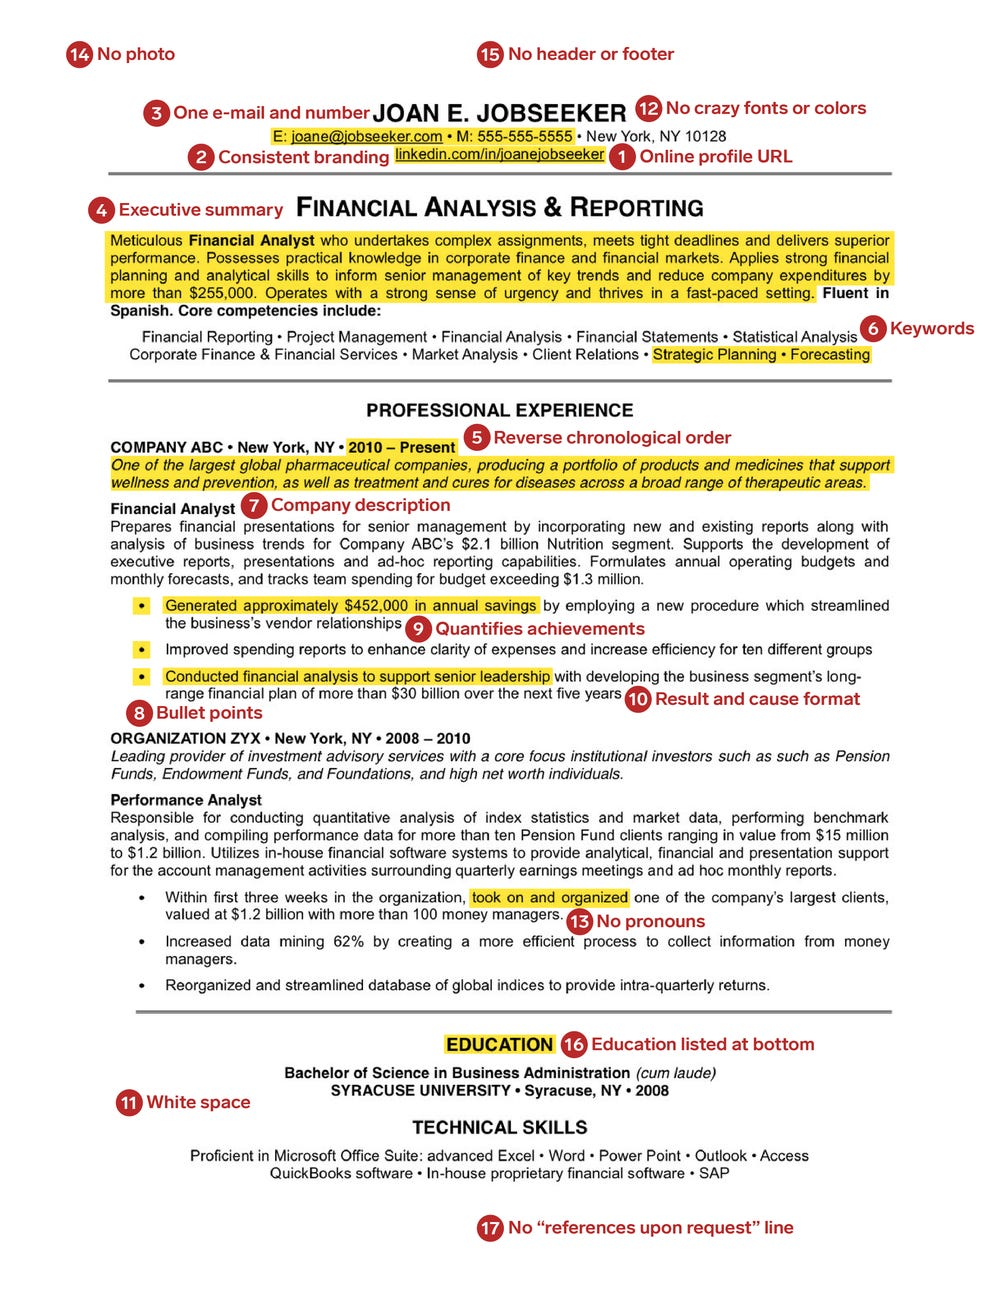 the perfect sample rsum for anyone looking new job political candidate resume school Resume Political Candidate Resume Sample India